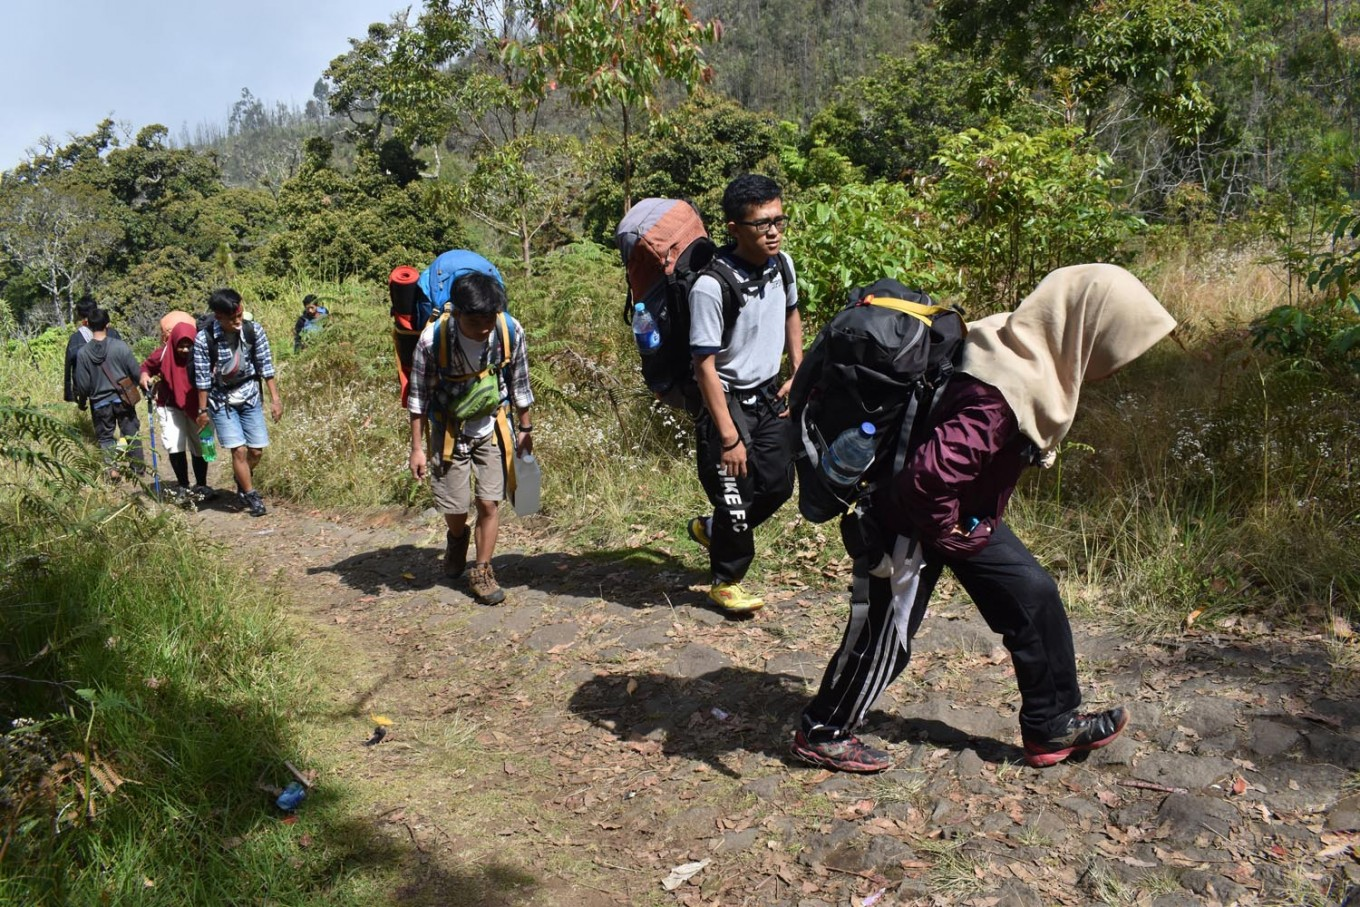 Fires force closure of hiking trails leading to three Central Java mountains